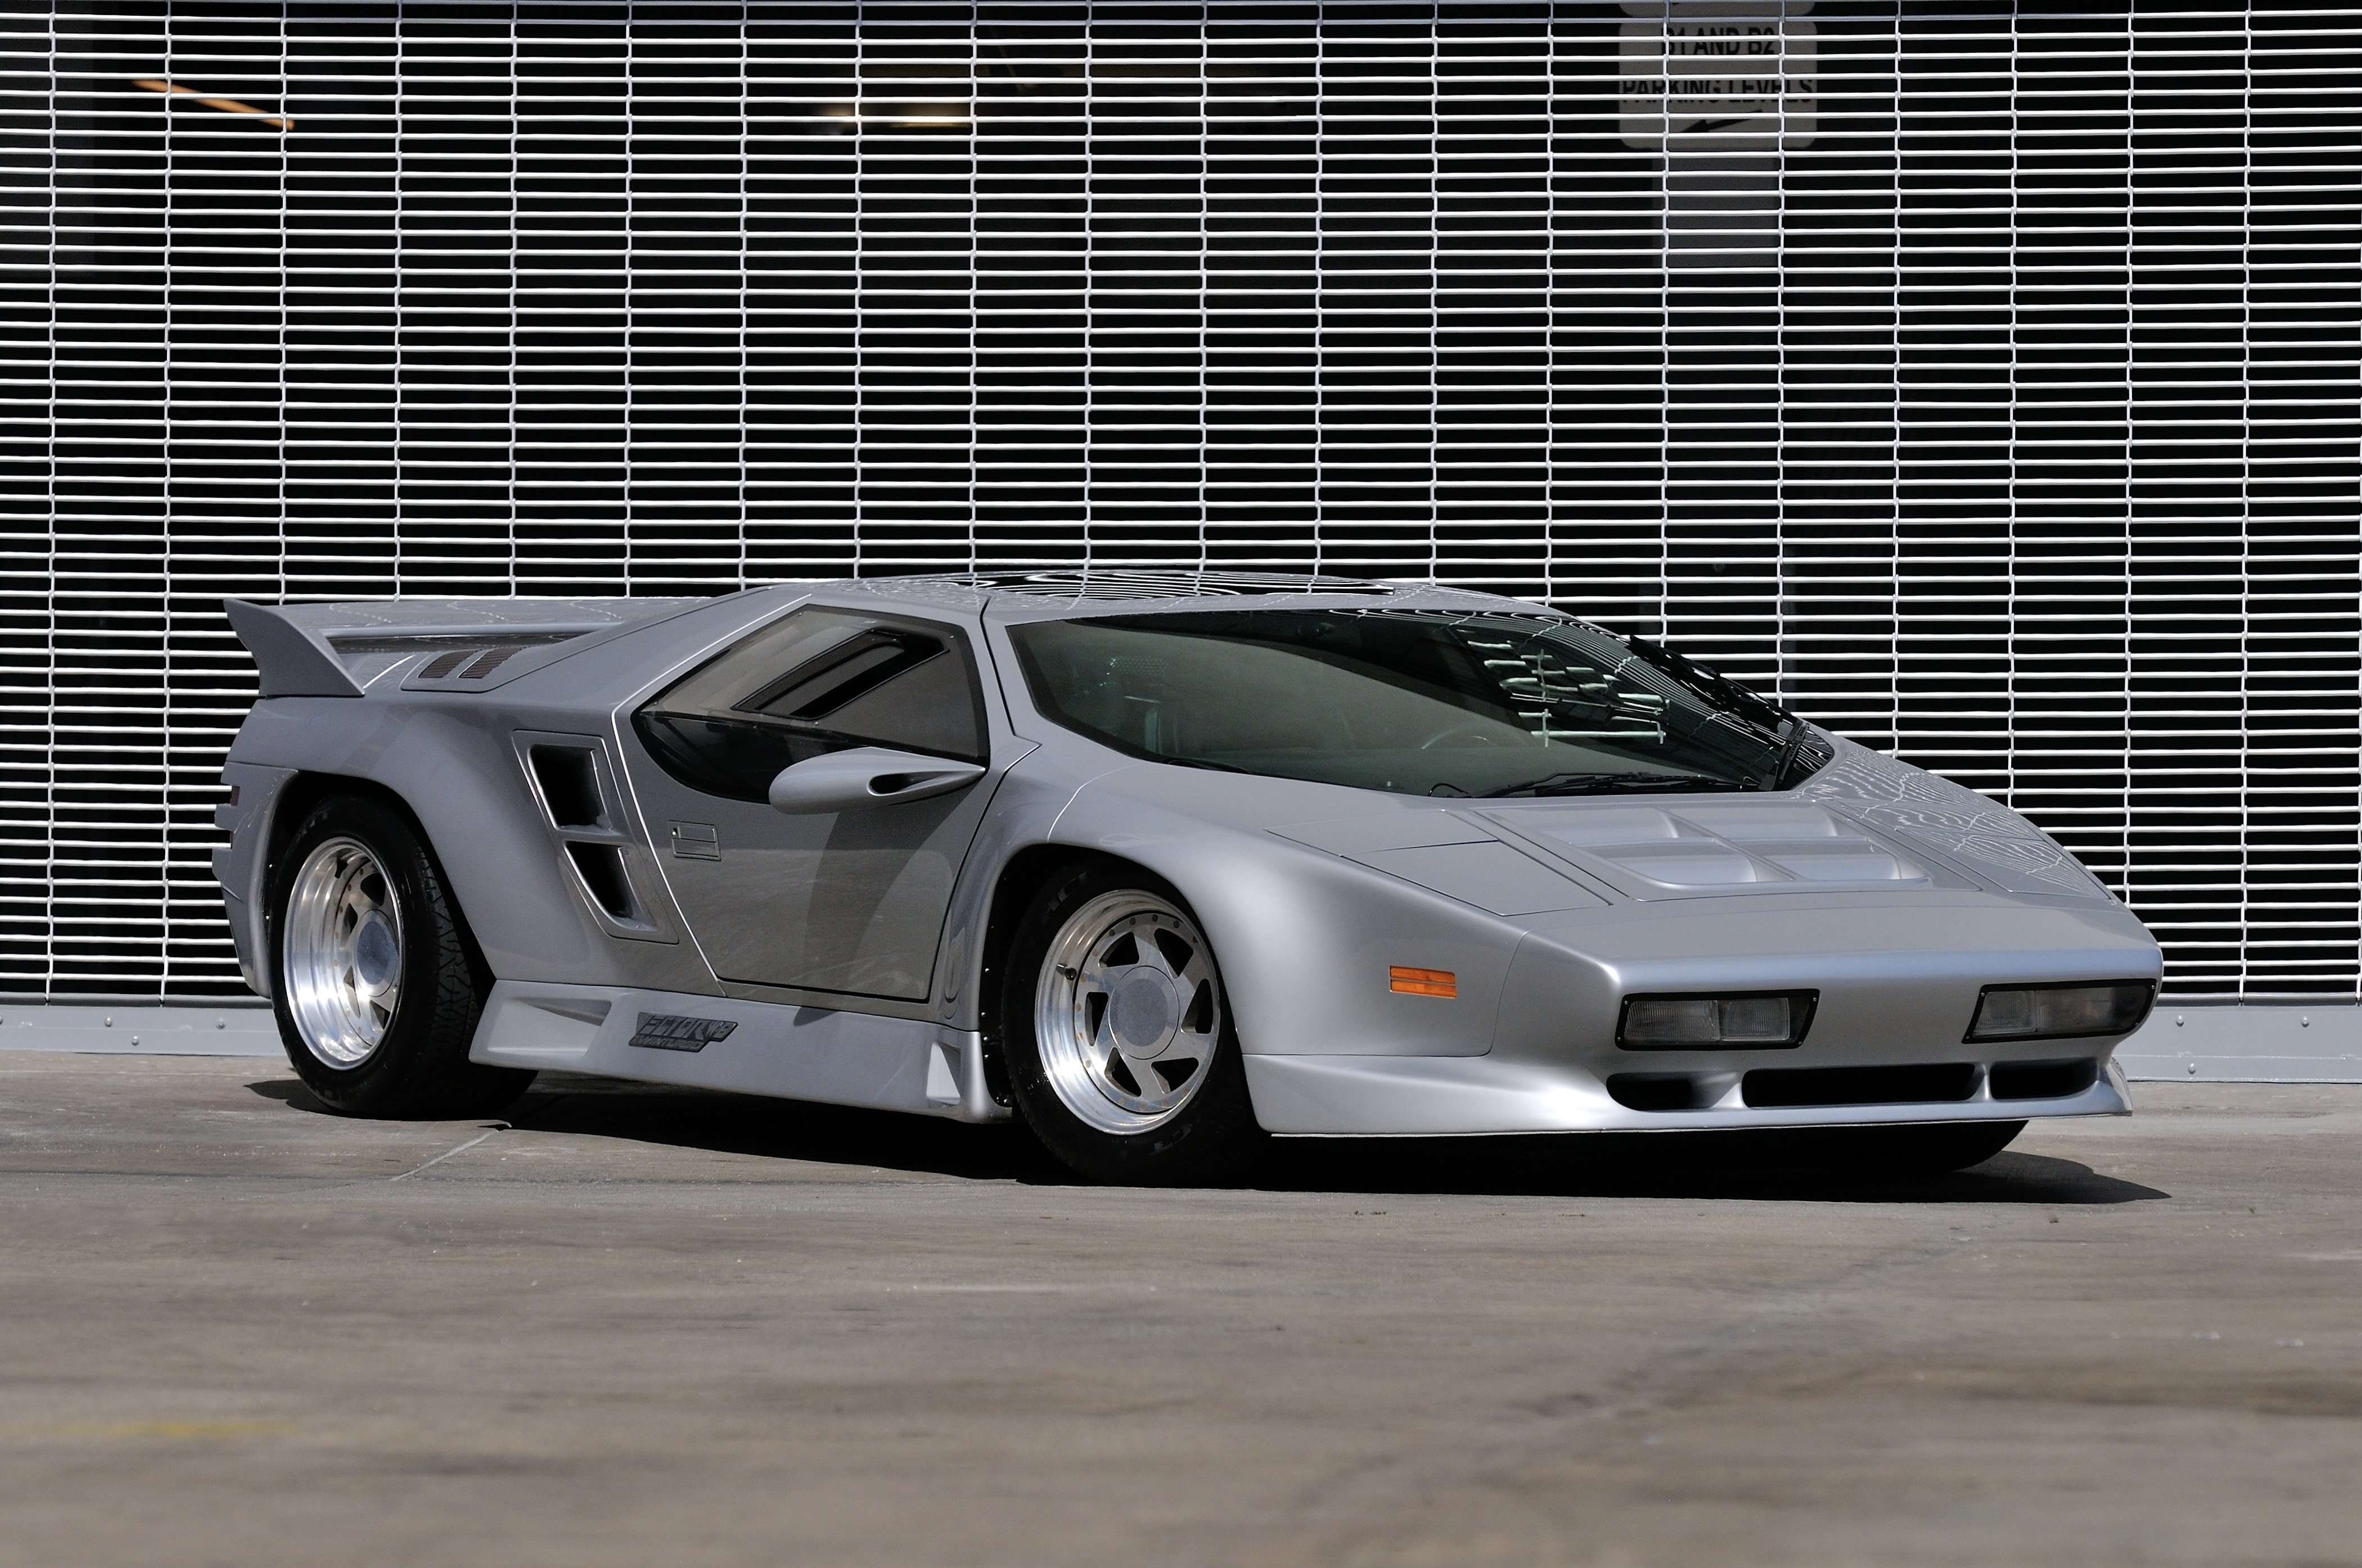 Image Result For Cheap Turbo Car Wallpaper